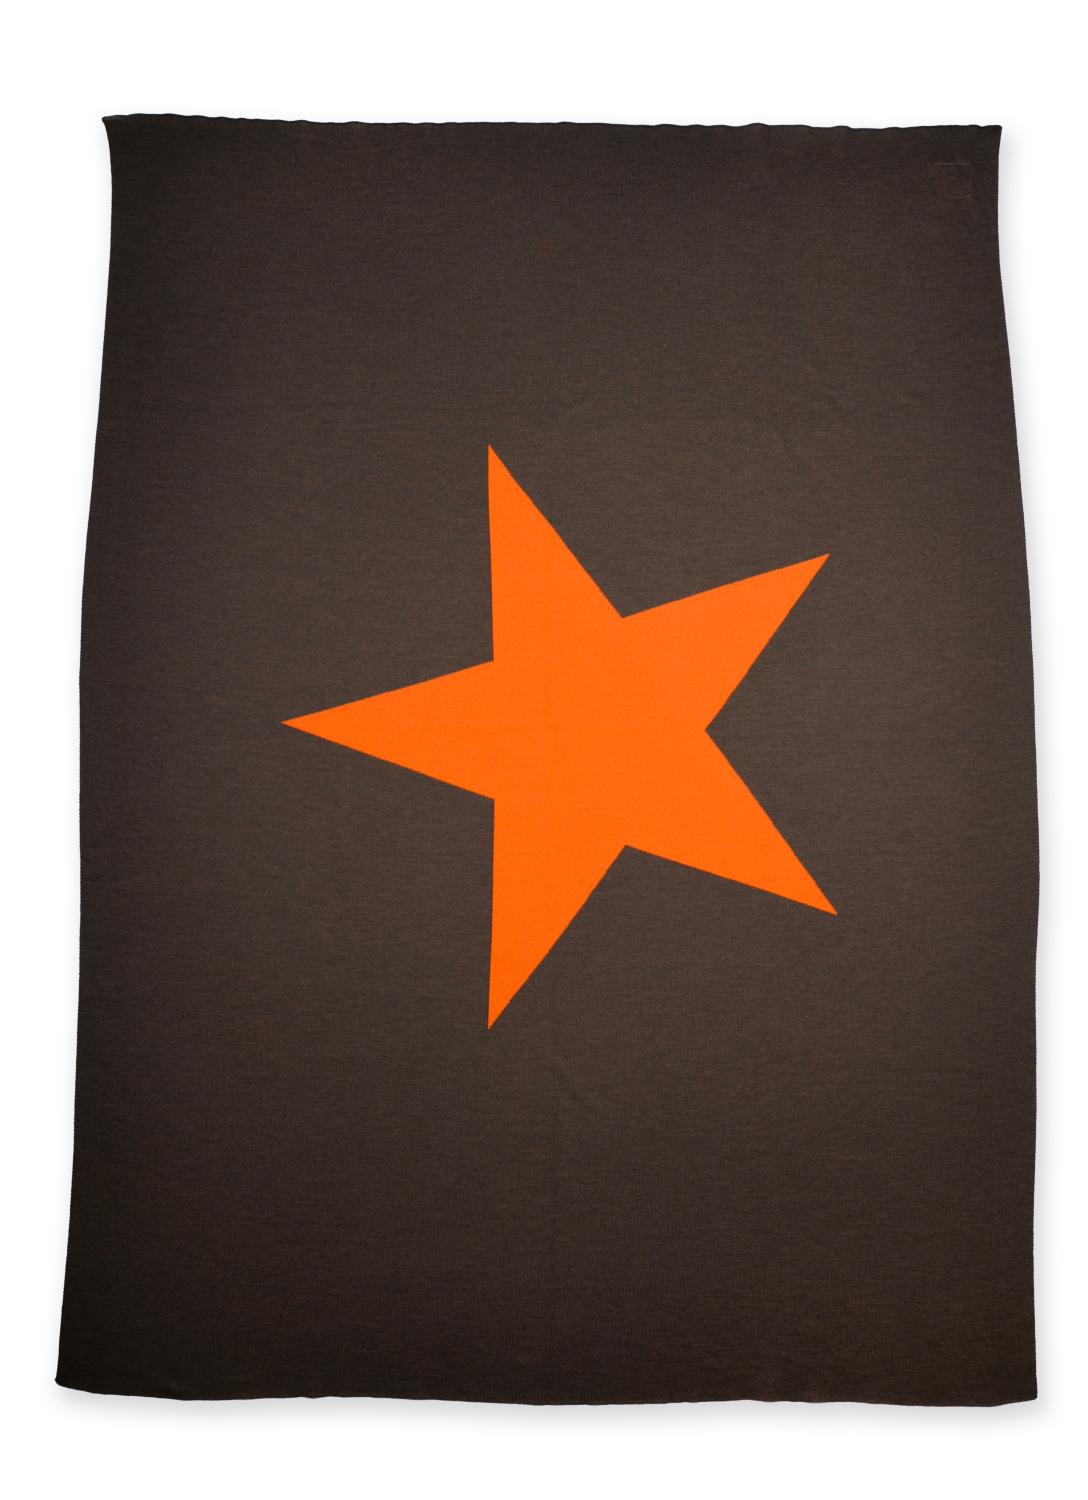 Decke 140x180cm Star, braun/orange